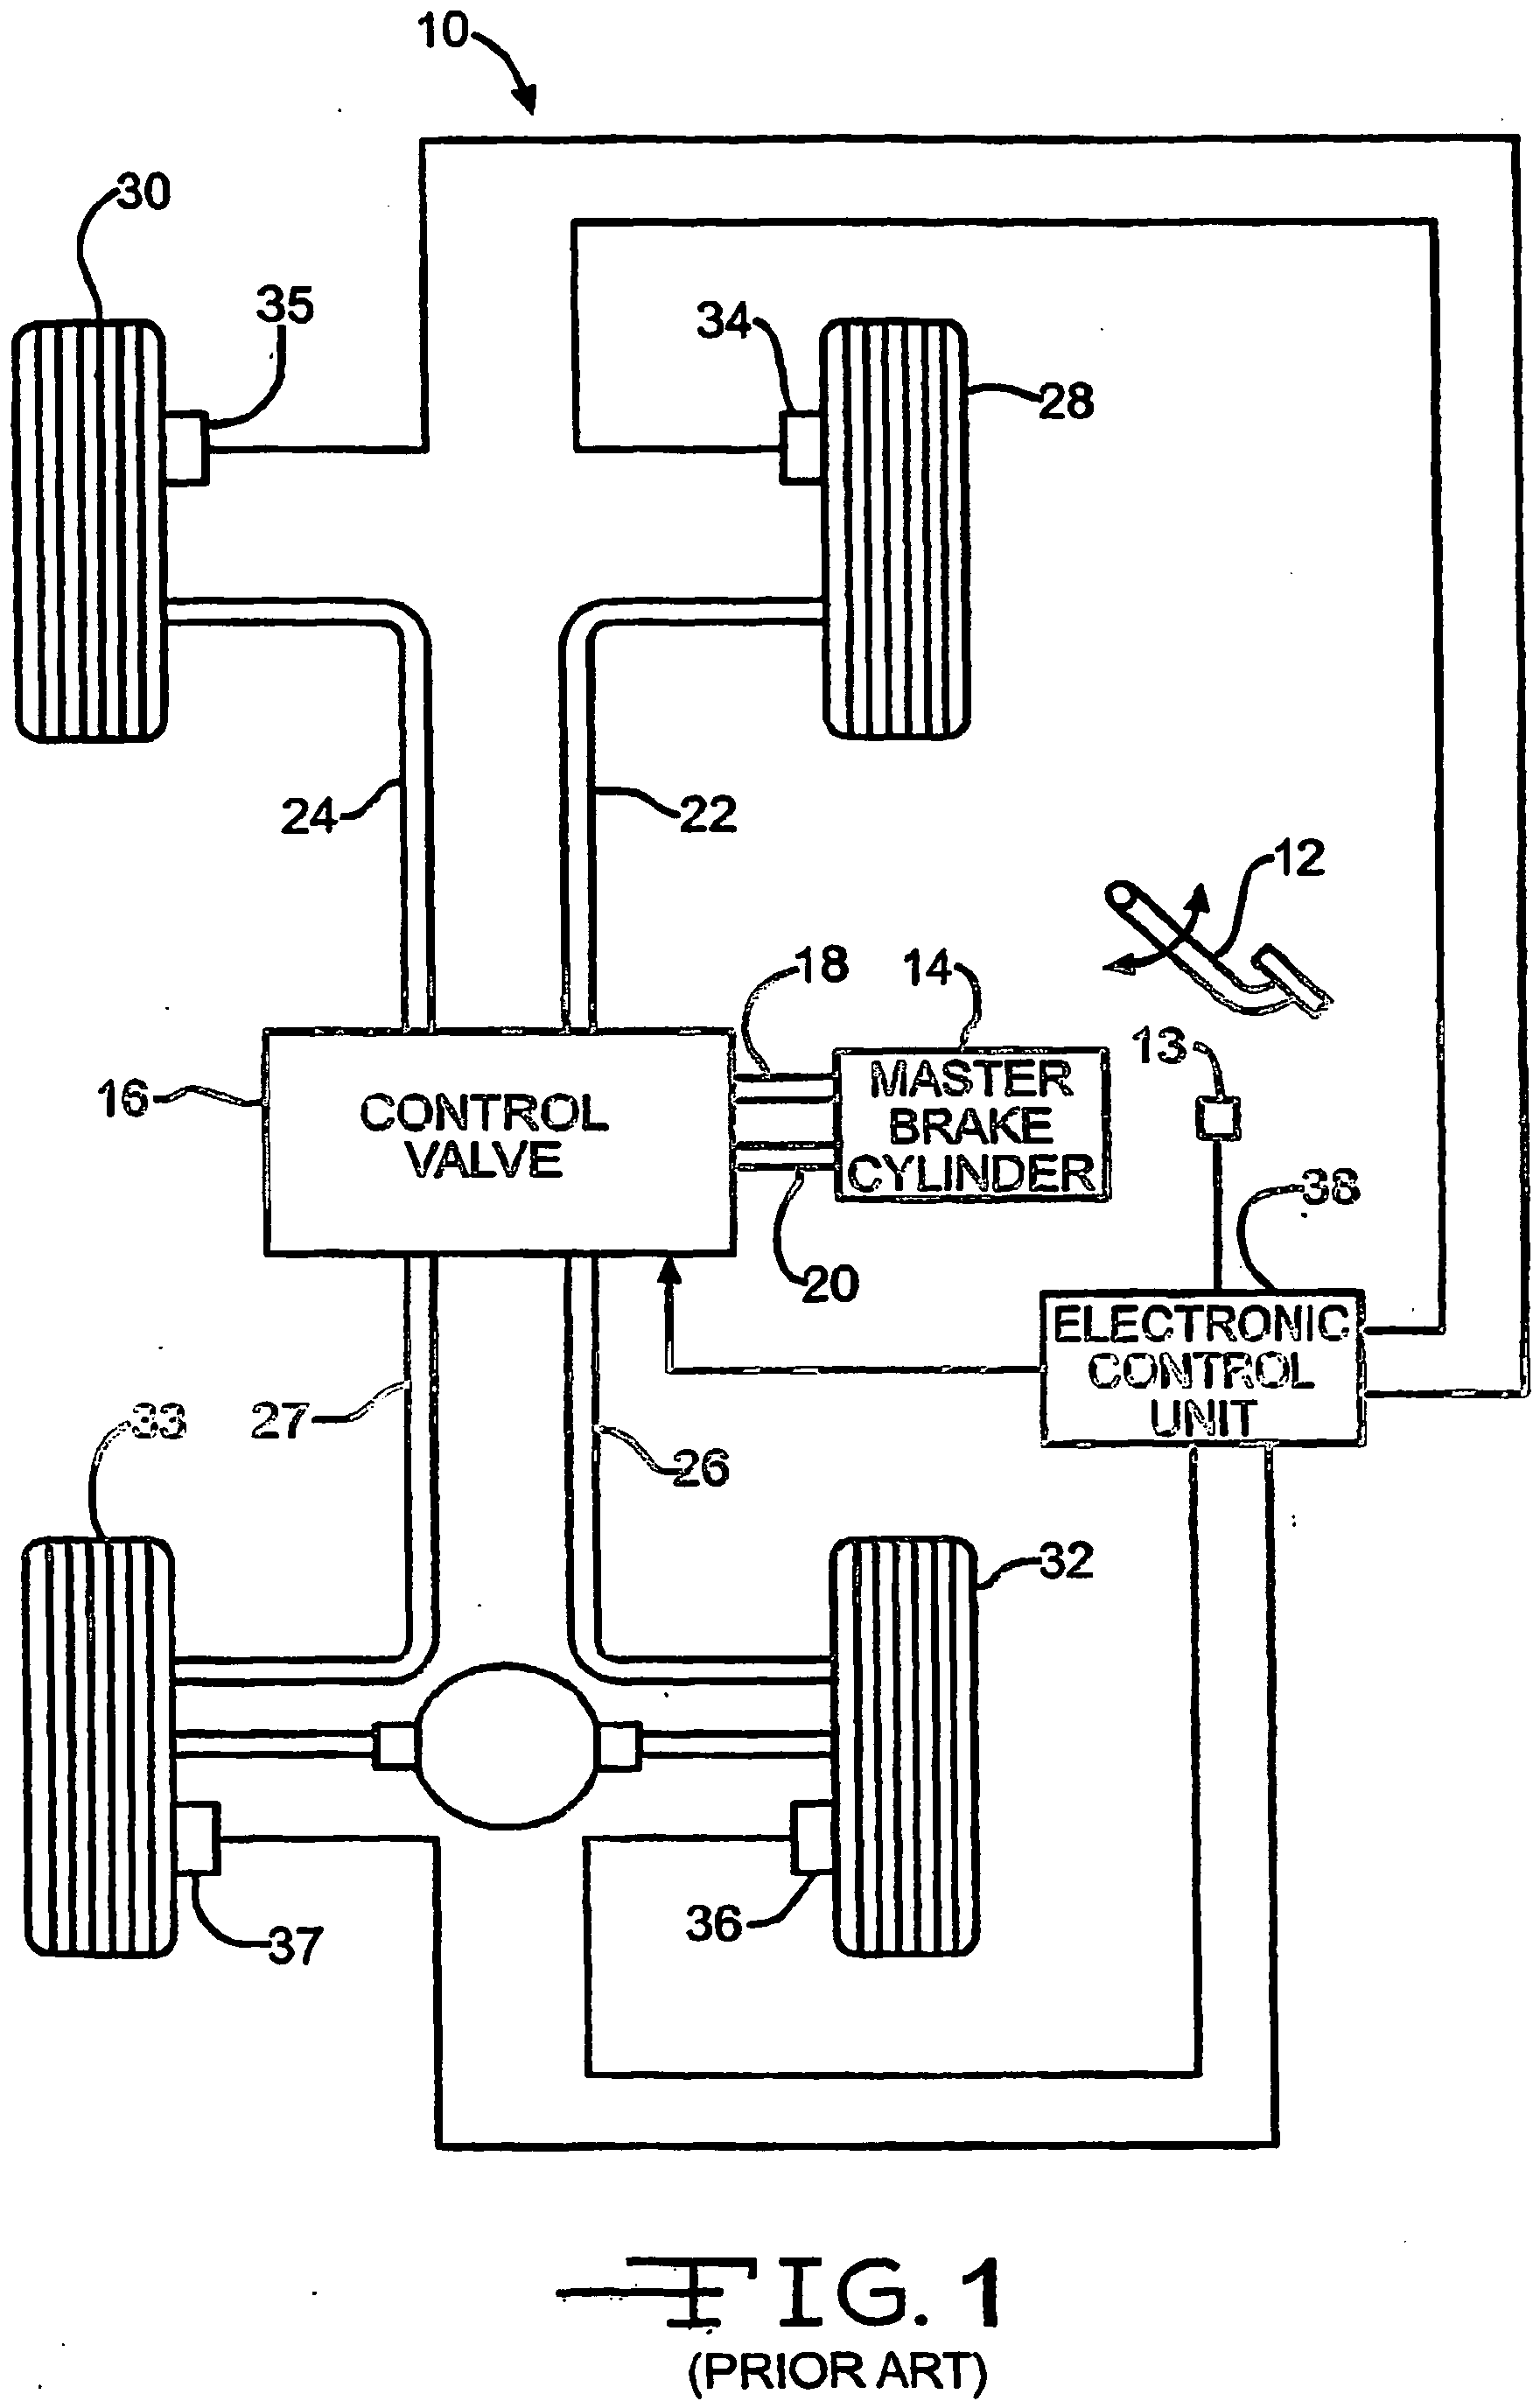 Abs Plumbing Diagrams